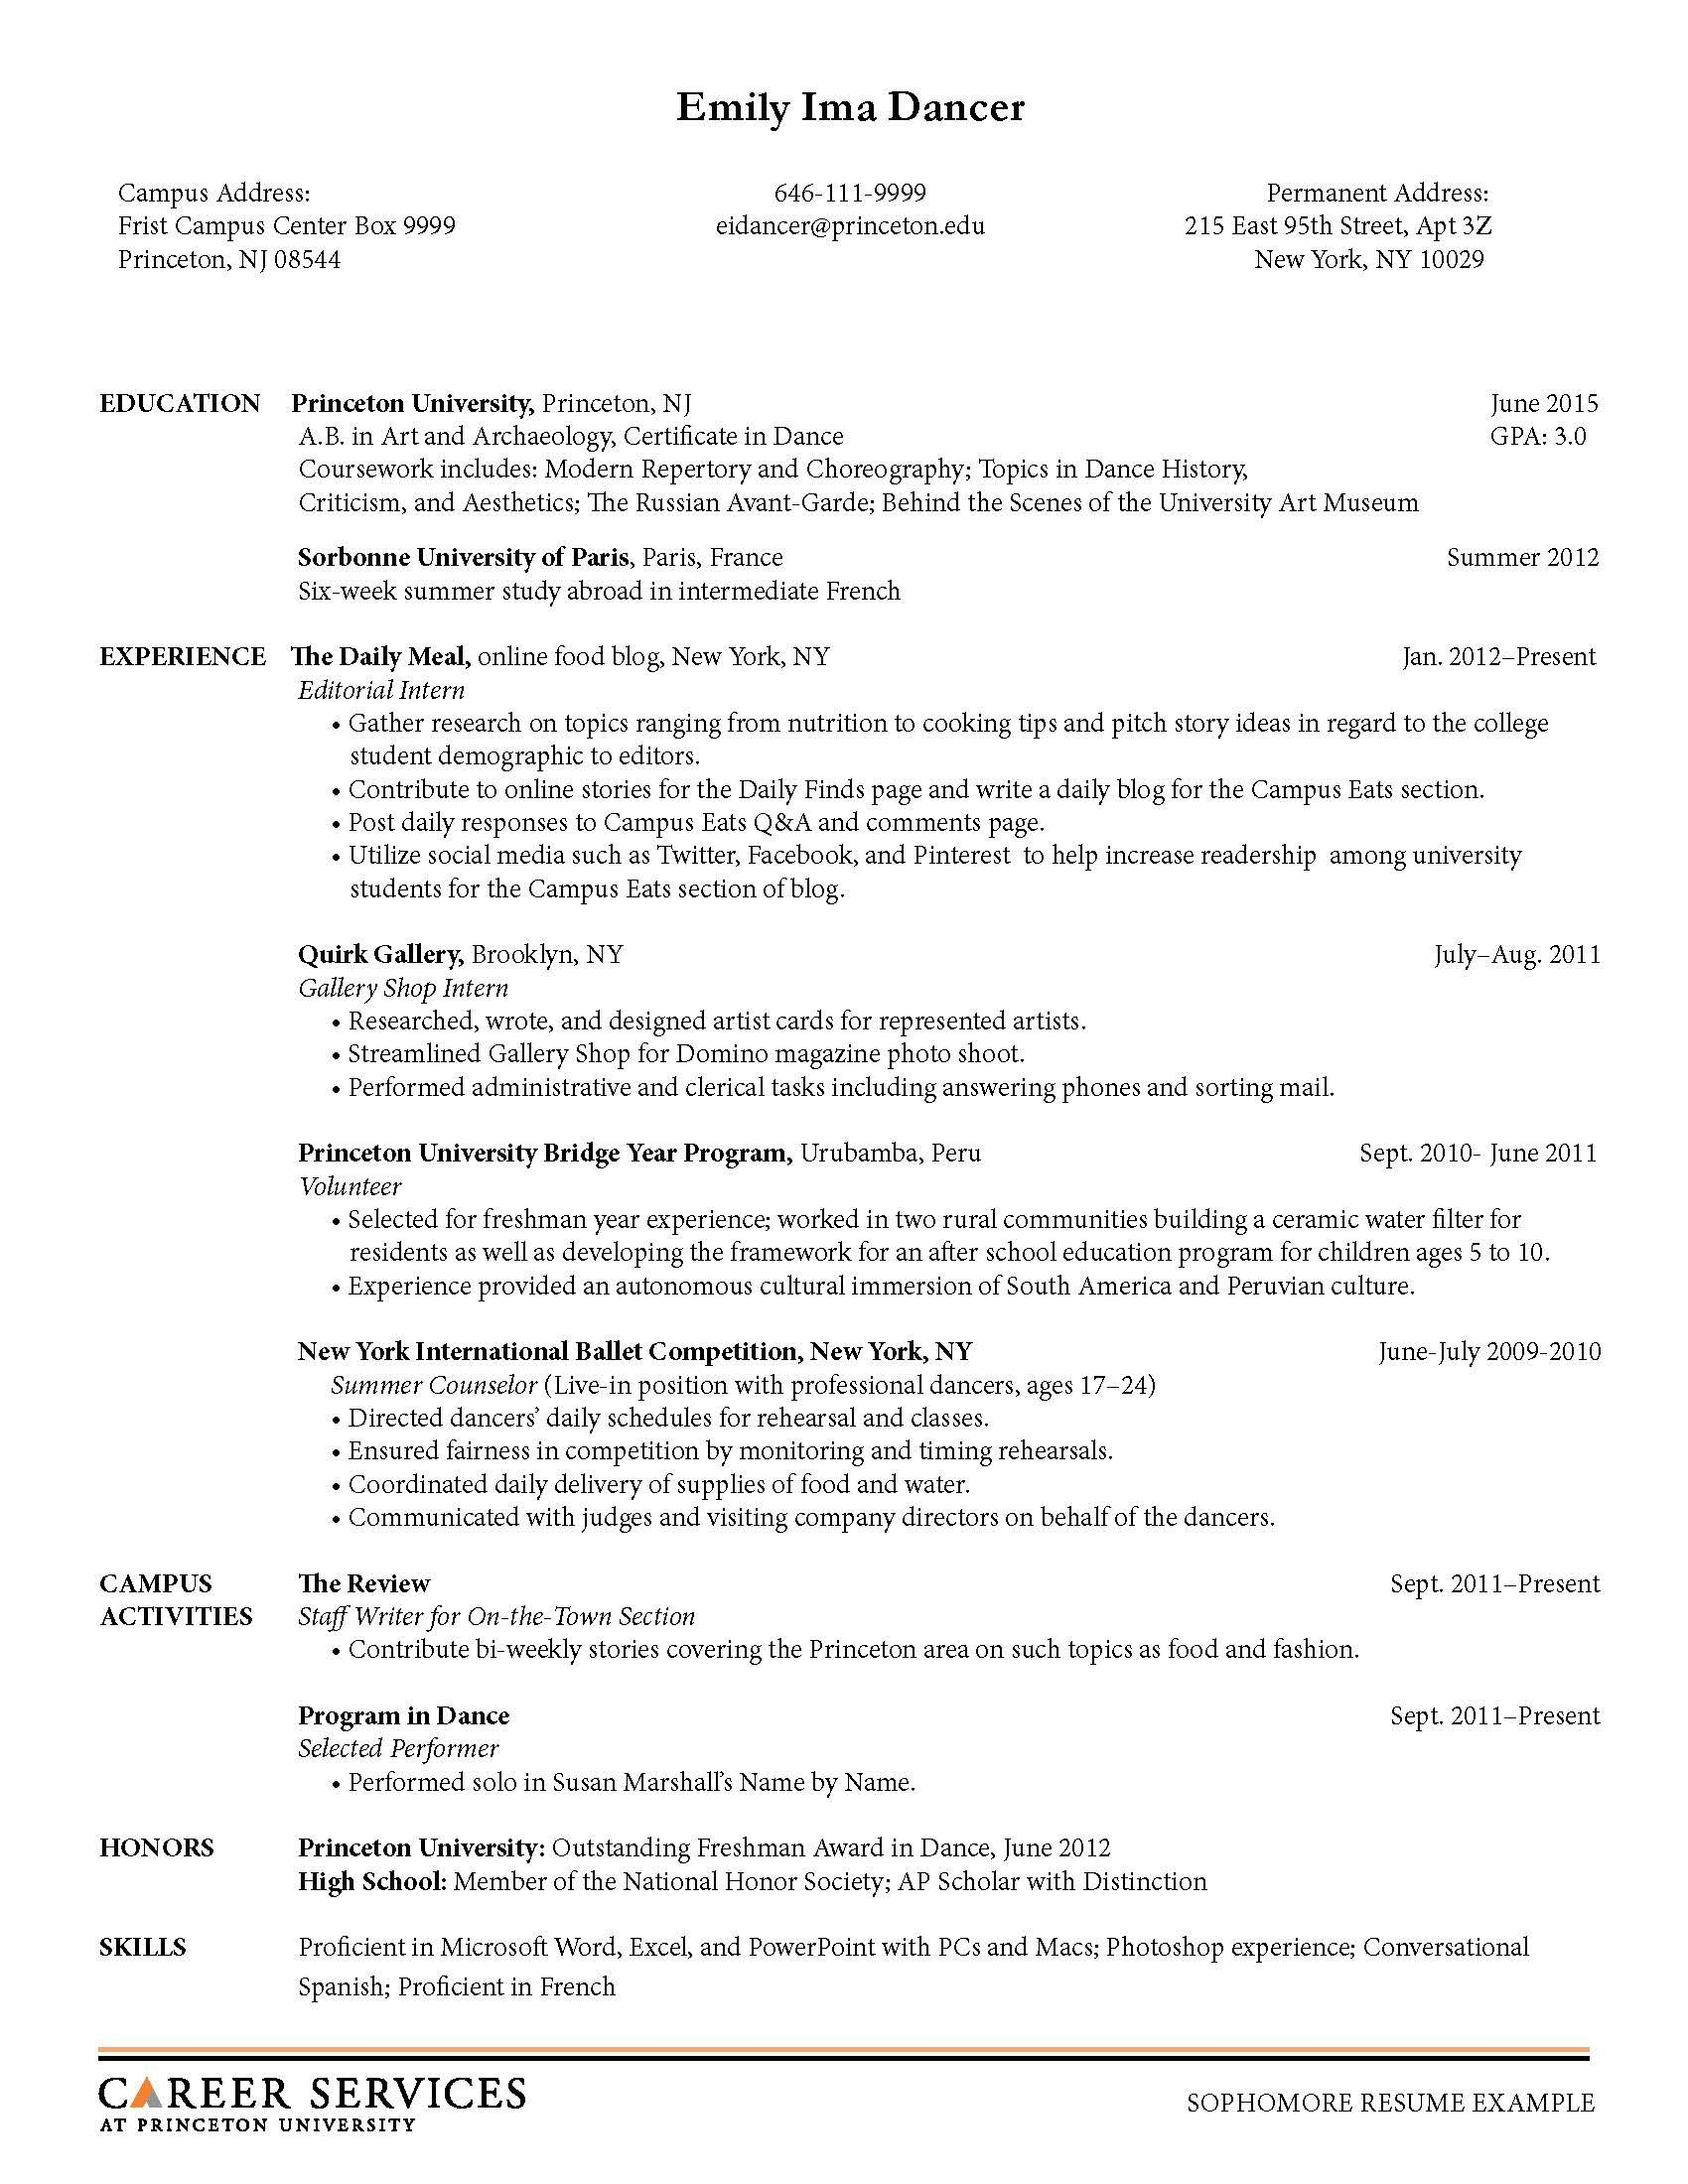 Opposenewapstandardsus  Seductive Sample Resume Resume And Career On Pinterest With Hot Write Resume Besides New Resume Format Furthermore New Graduate Nurse Resume With Awesome Sample College Student Resume Also Lvn Resume In Addition Listing Education On Resume And Account Executive Resume As Well As Resume Power Verbs Additionally Resume Opening Statement From Pinterestcom With Opposenewapstandardsus  Hot Sample Resume Resume And Career On Pinterest With Awesome Write Resume Besides New Resume Format Furthermore New Graduate Nurse Resume And Seductive Sample College Student Resume Also Lvn Resume In Addition Listing Education On Resume From Pinterestcom